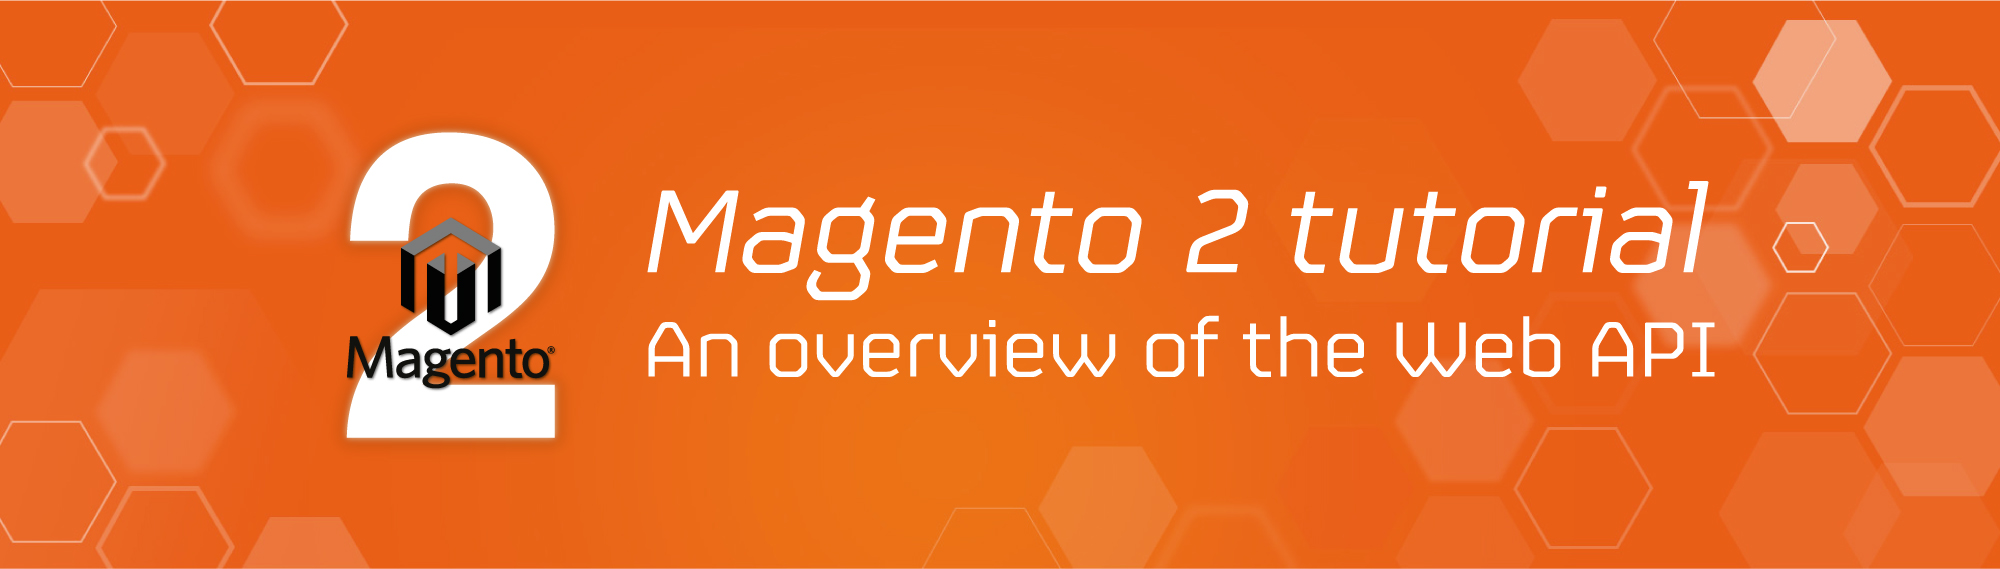 Magento 2 tutorial: an overview of the Web API | Inviqa